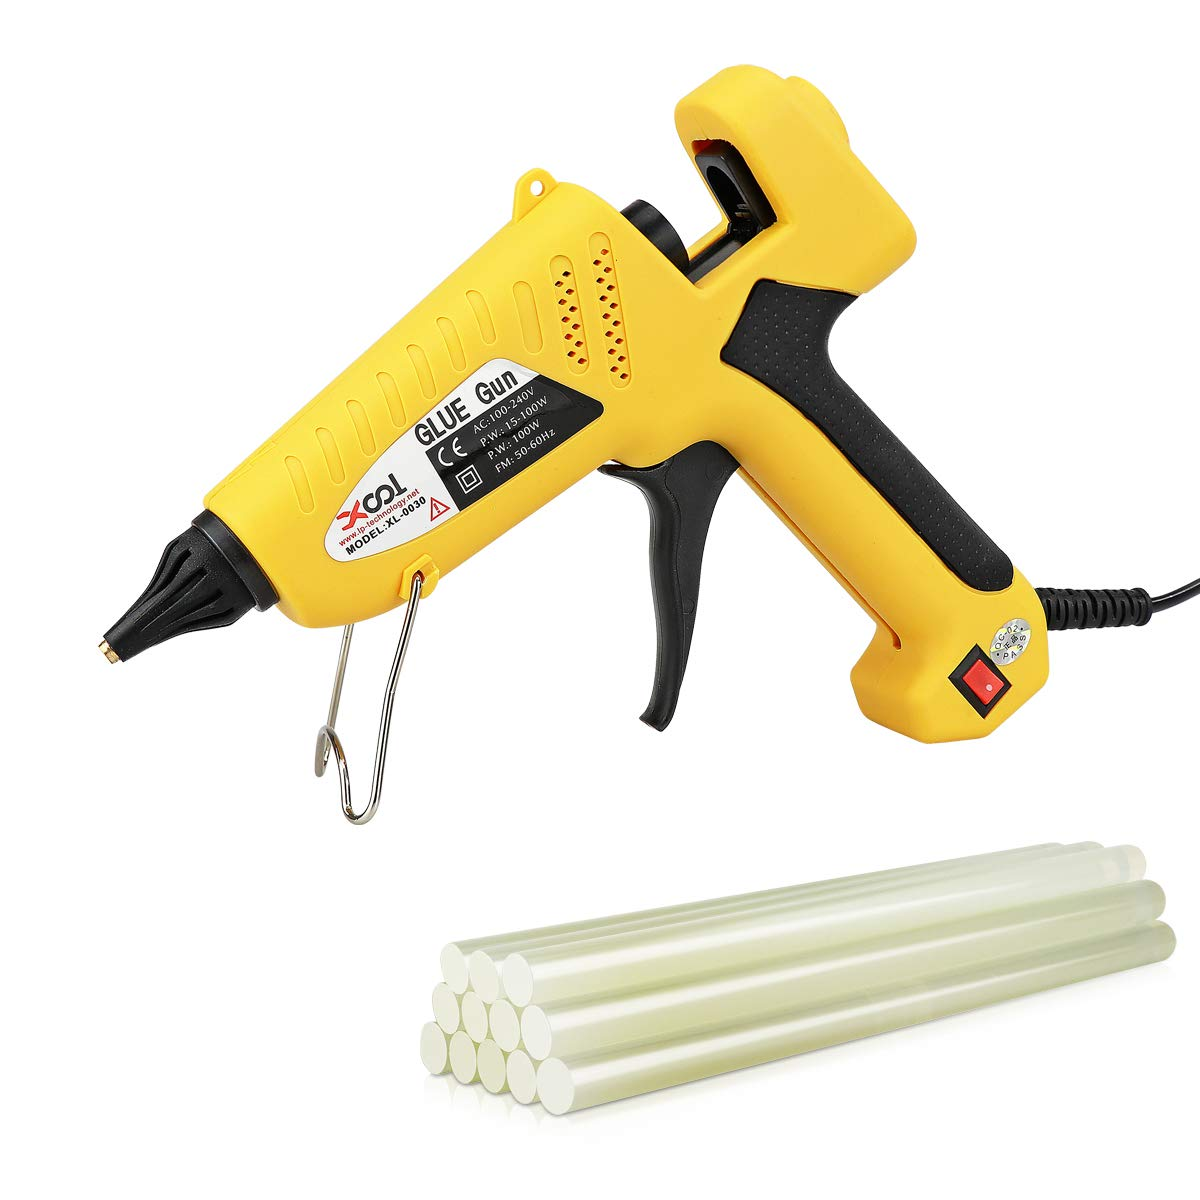 Amazon com: 100-Watt Hot Glue Gun with Flexible Trigger